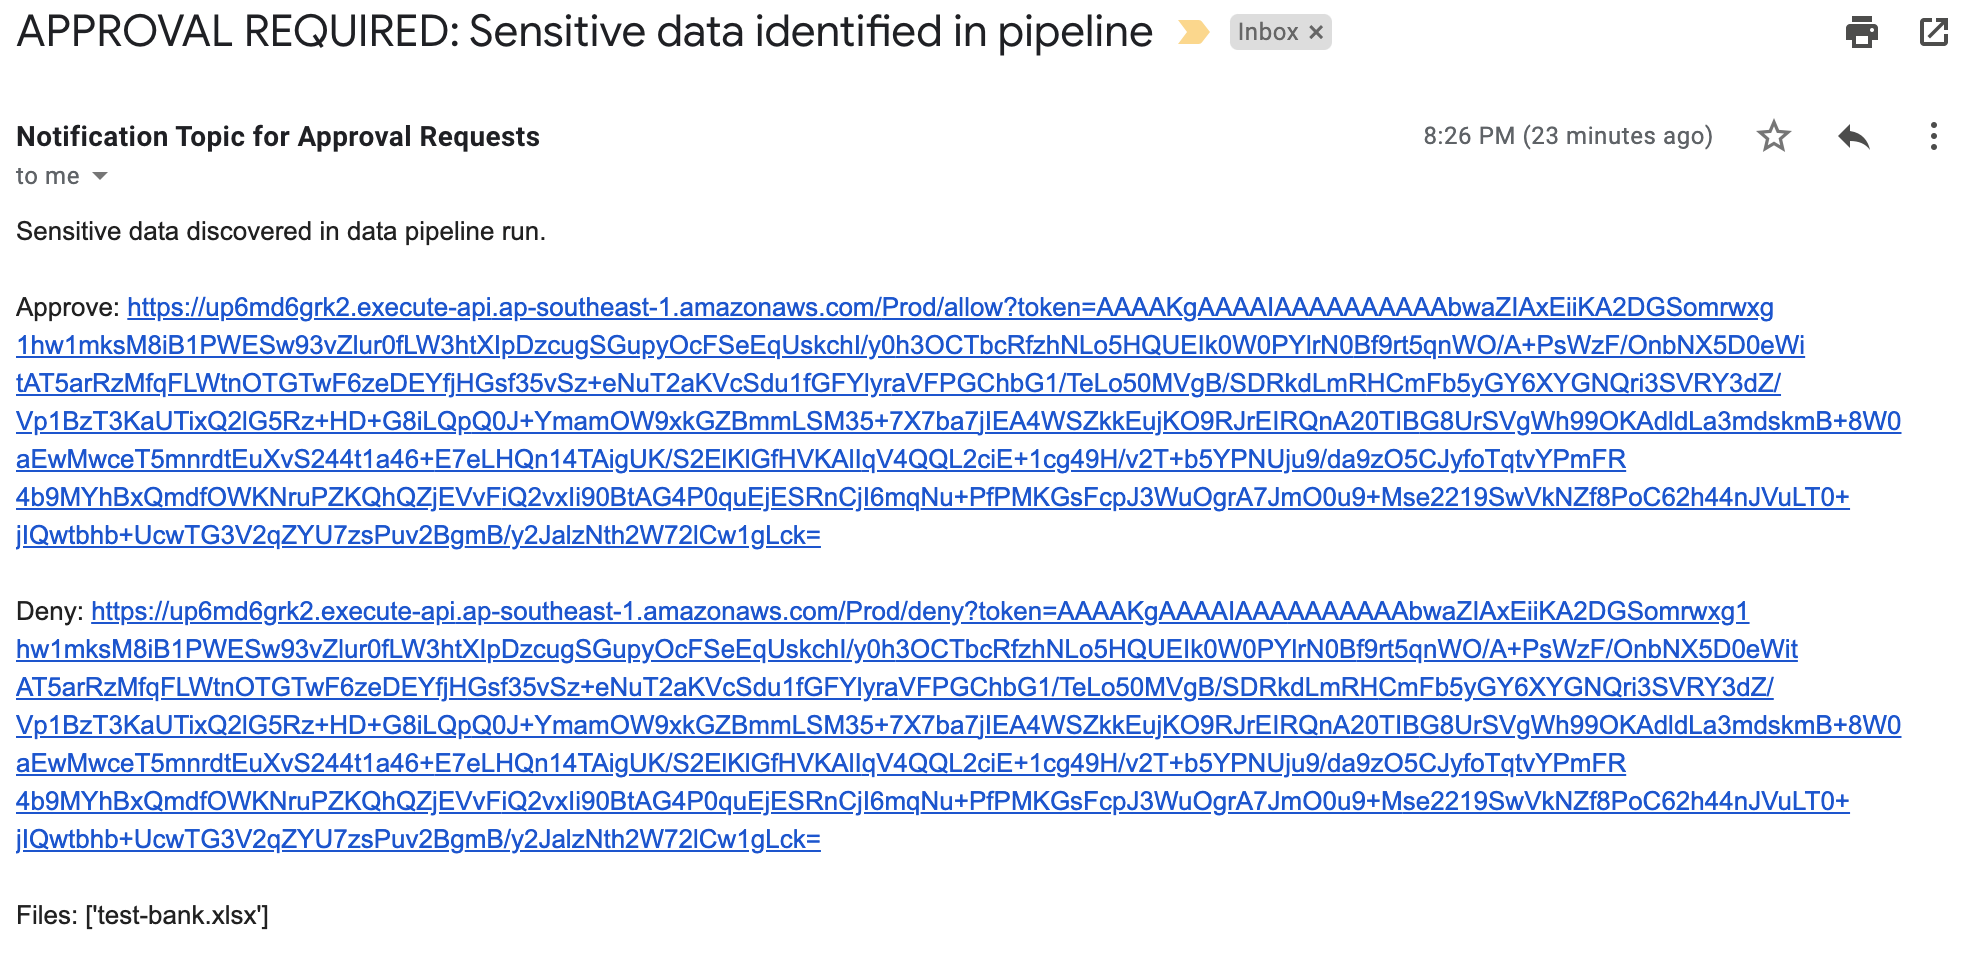 Figure 6: Sensitive data identified email